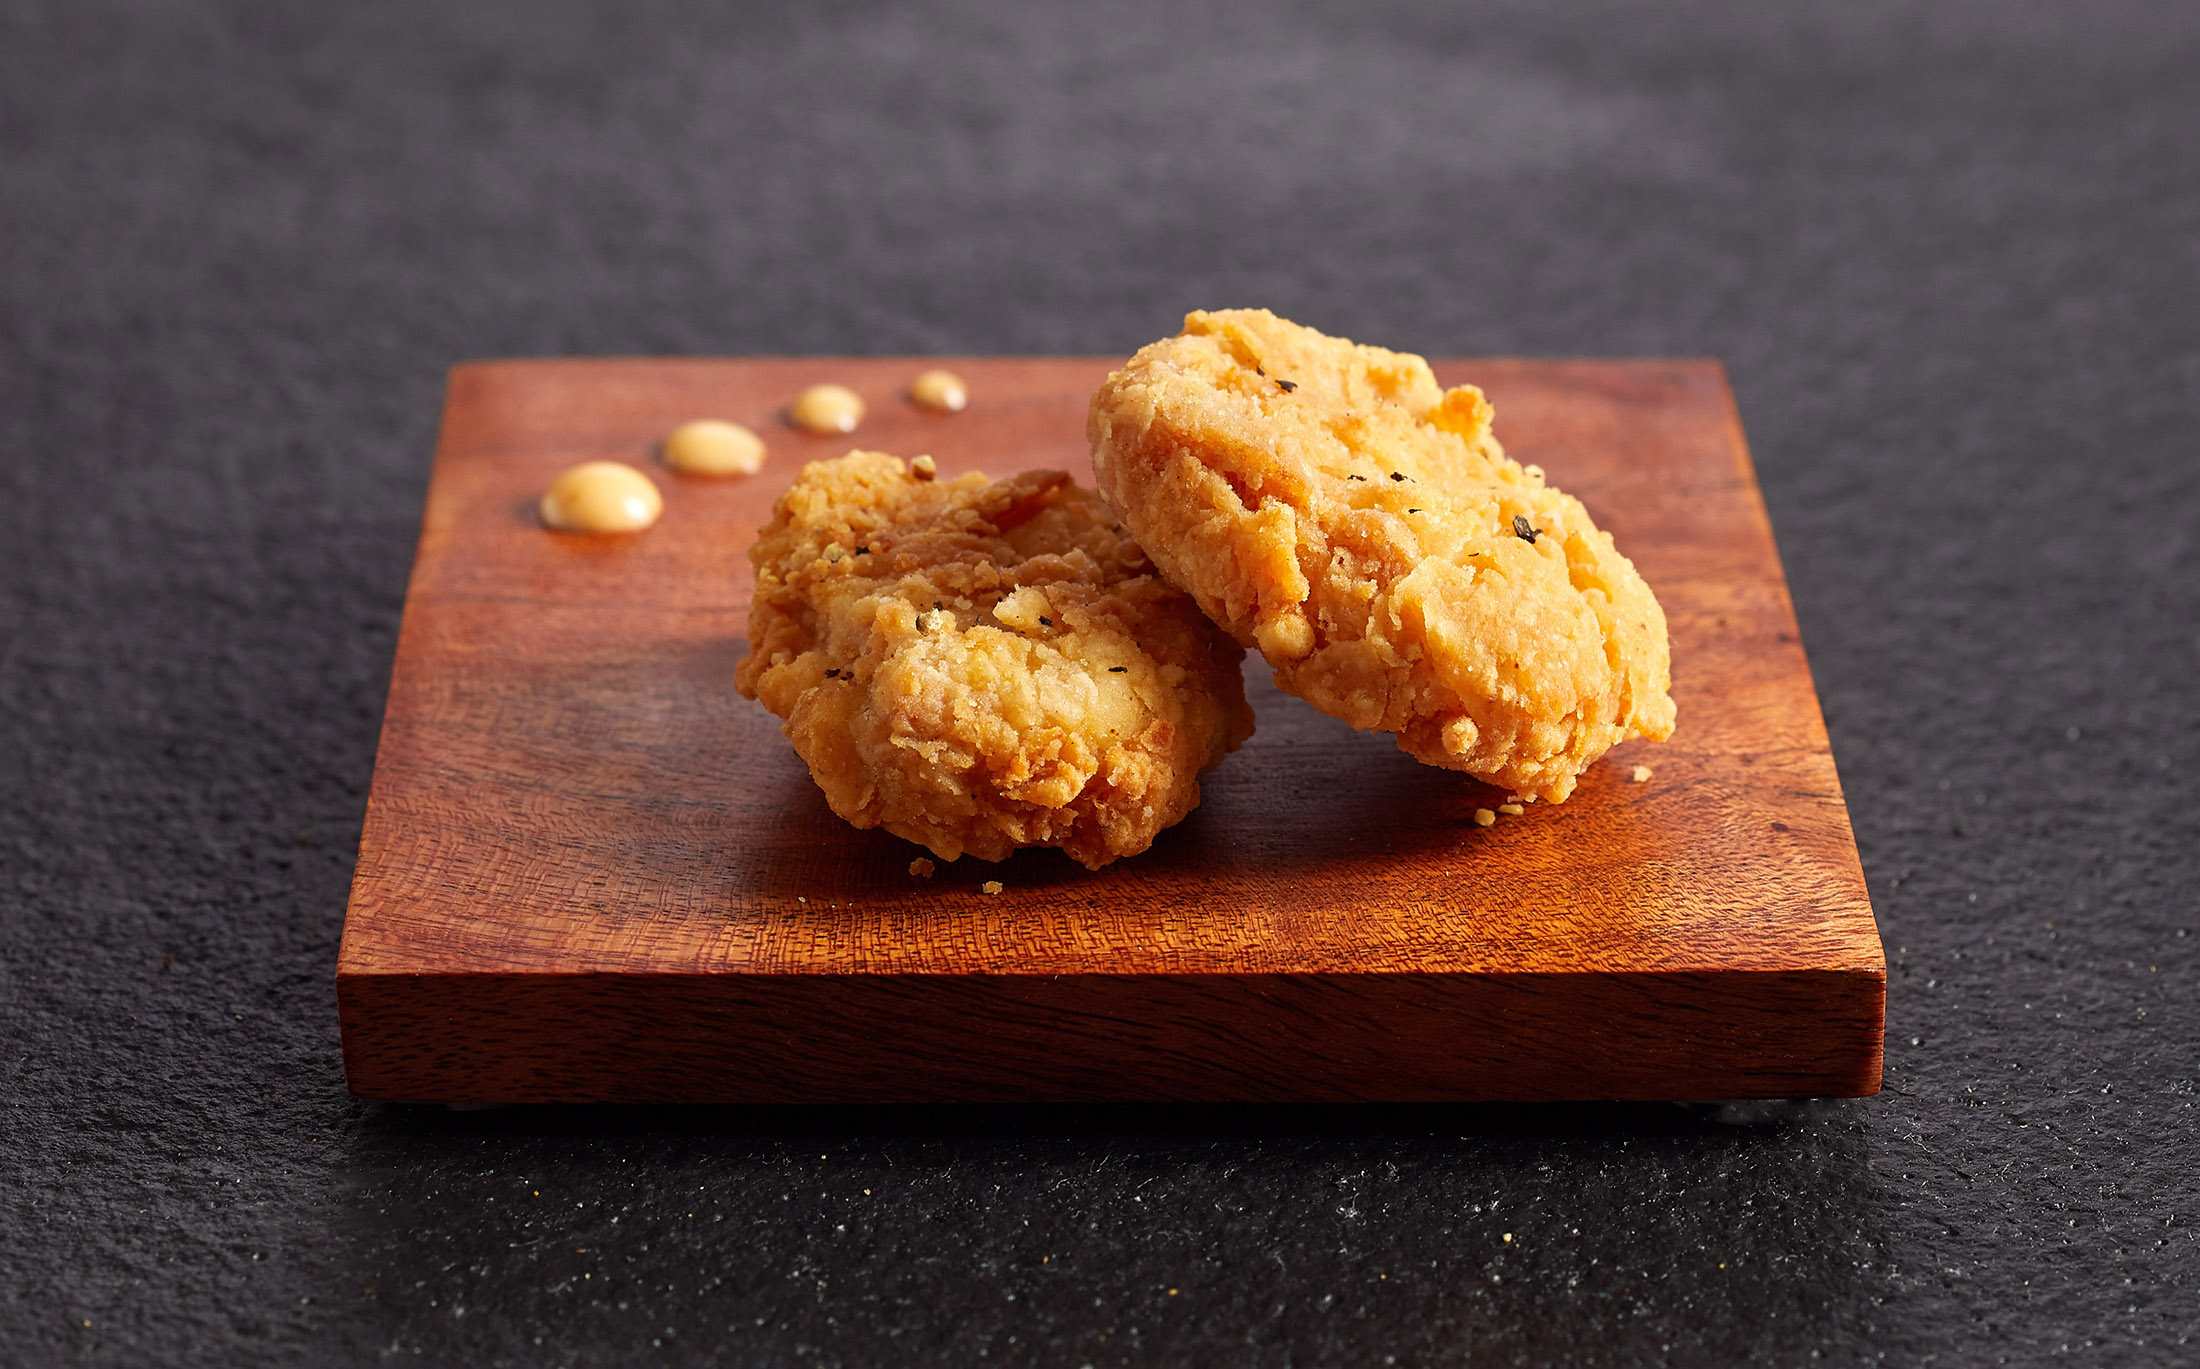 Eat Just says its lab-grown chicken is better for the environment and more humane.